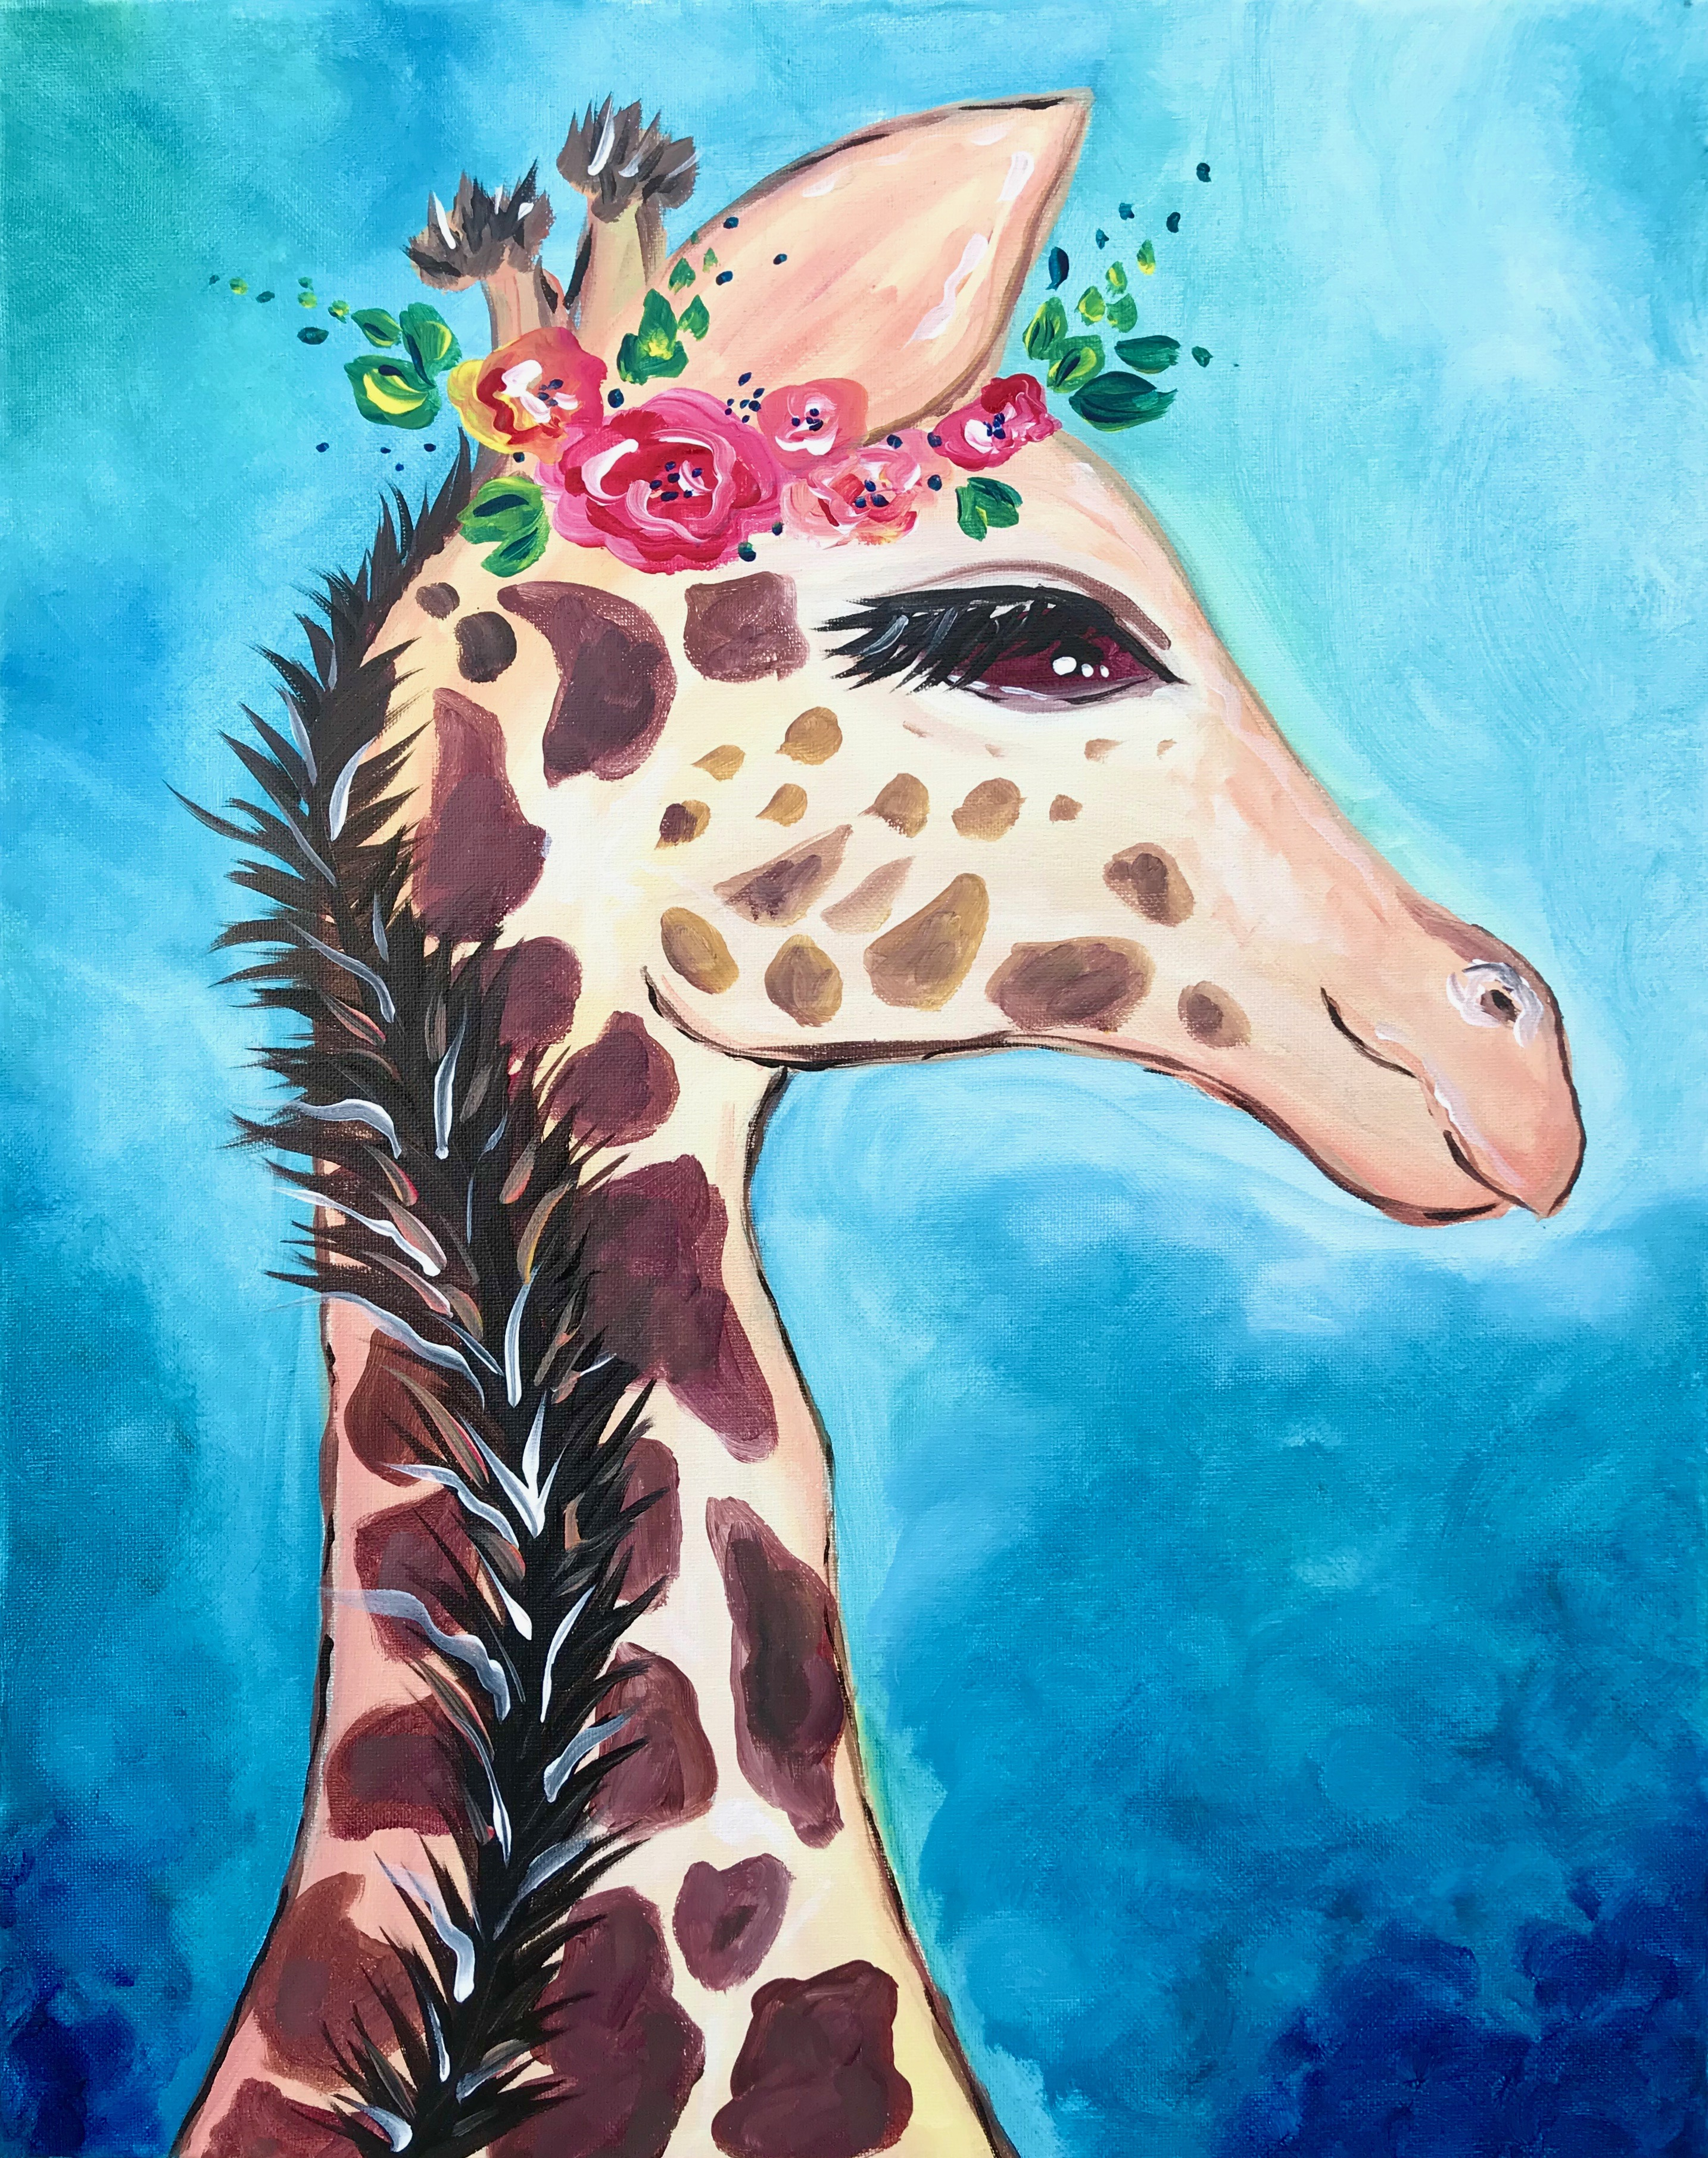 A Belle Giraffe experience project by Yaymaker